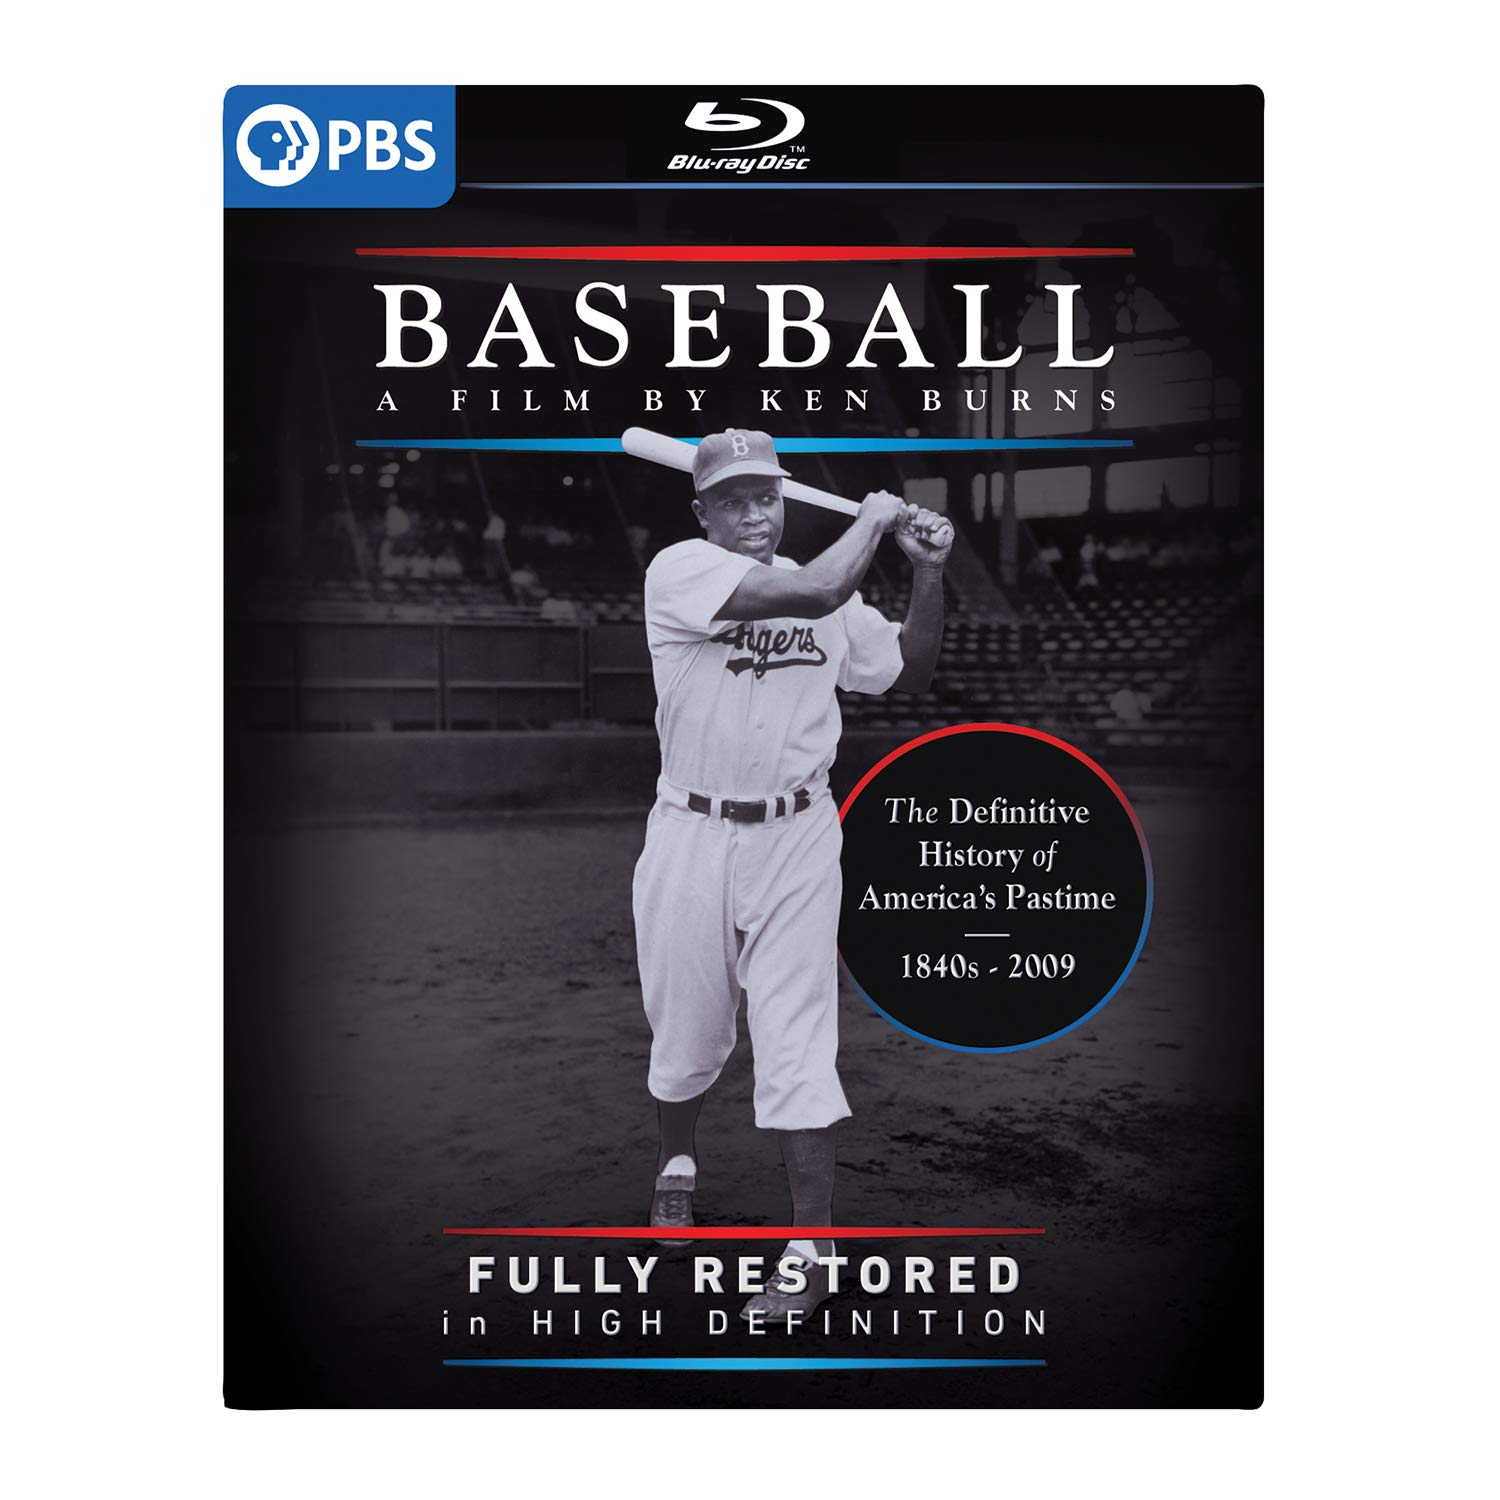 Baseball: Limited time cheap sale A Sacramento Mall Film By Ken Burns High Definition Restored Fully in